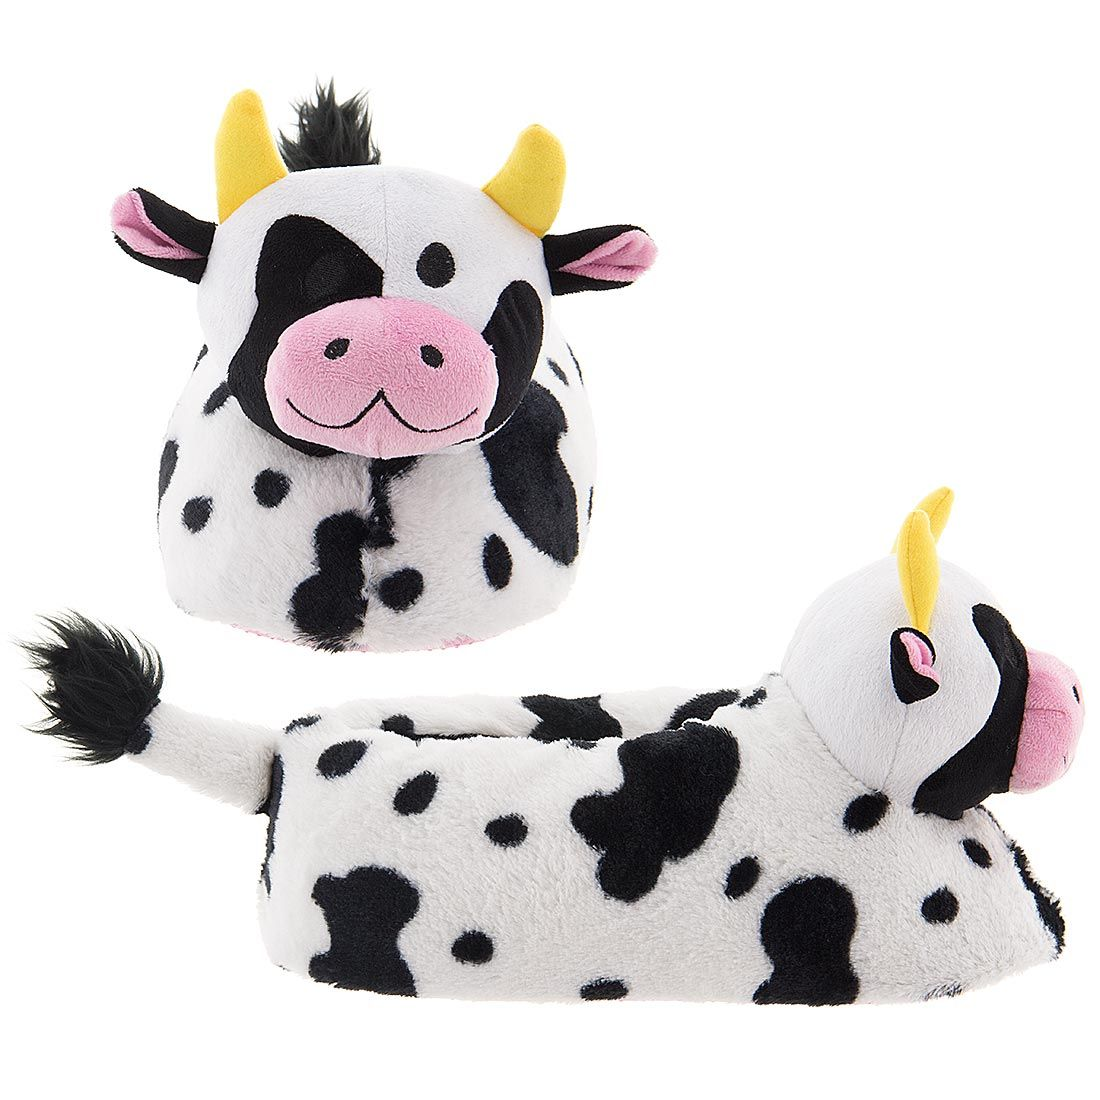 3bd1fee8e3174 Fun Cow Slippers for Adults – What could be move fun than funny cow slippers  on your feet